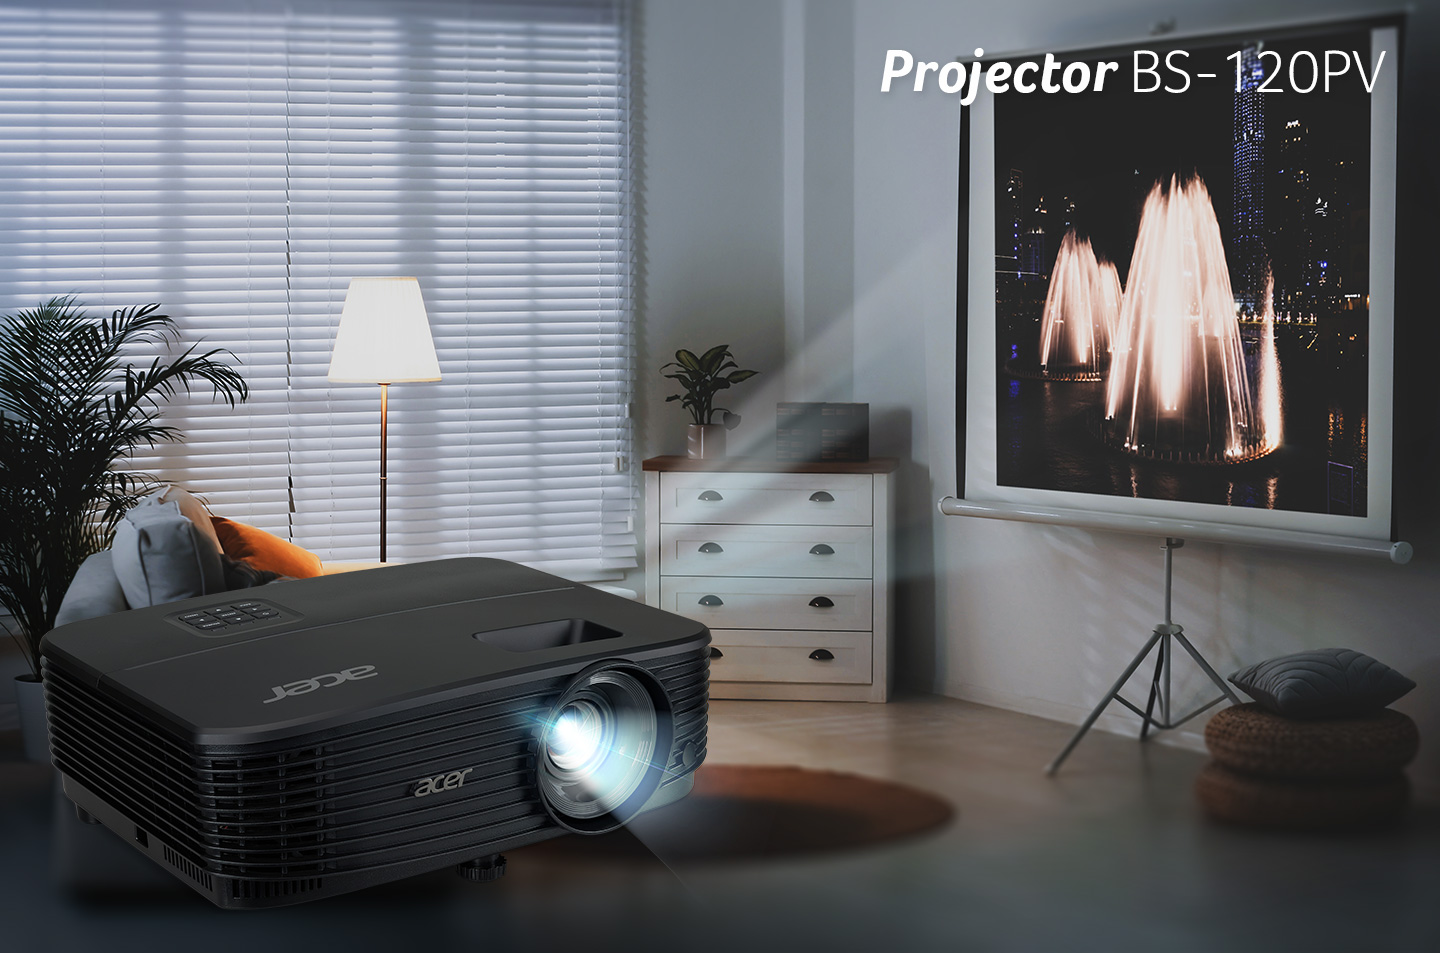 Acer-projector-image